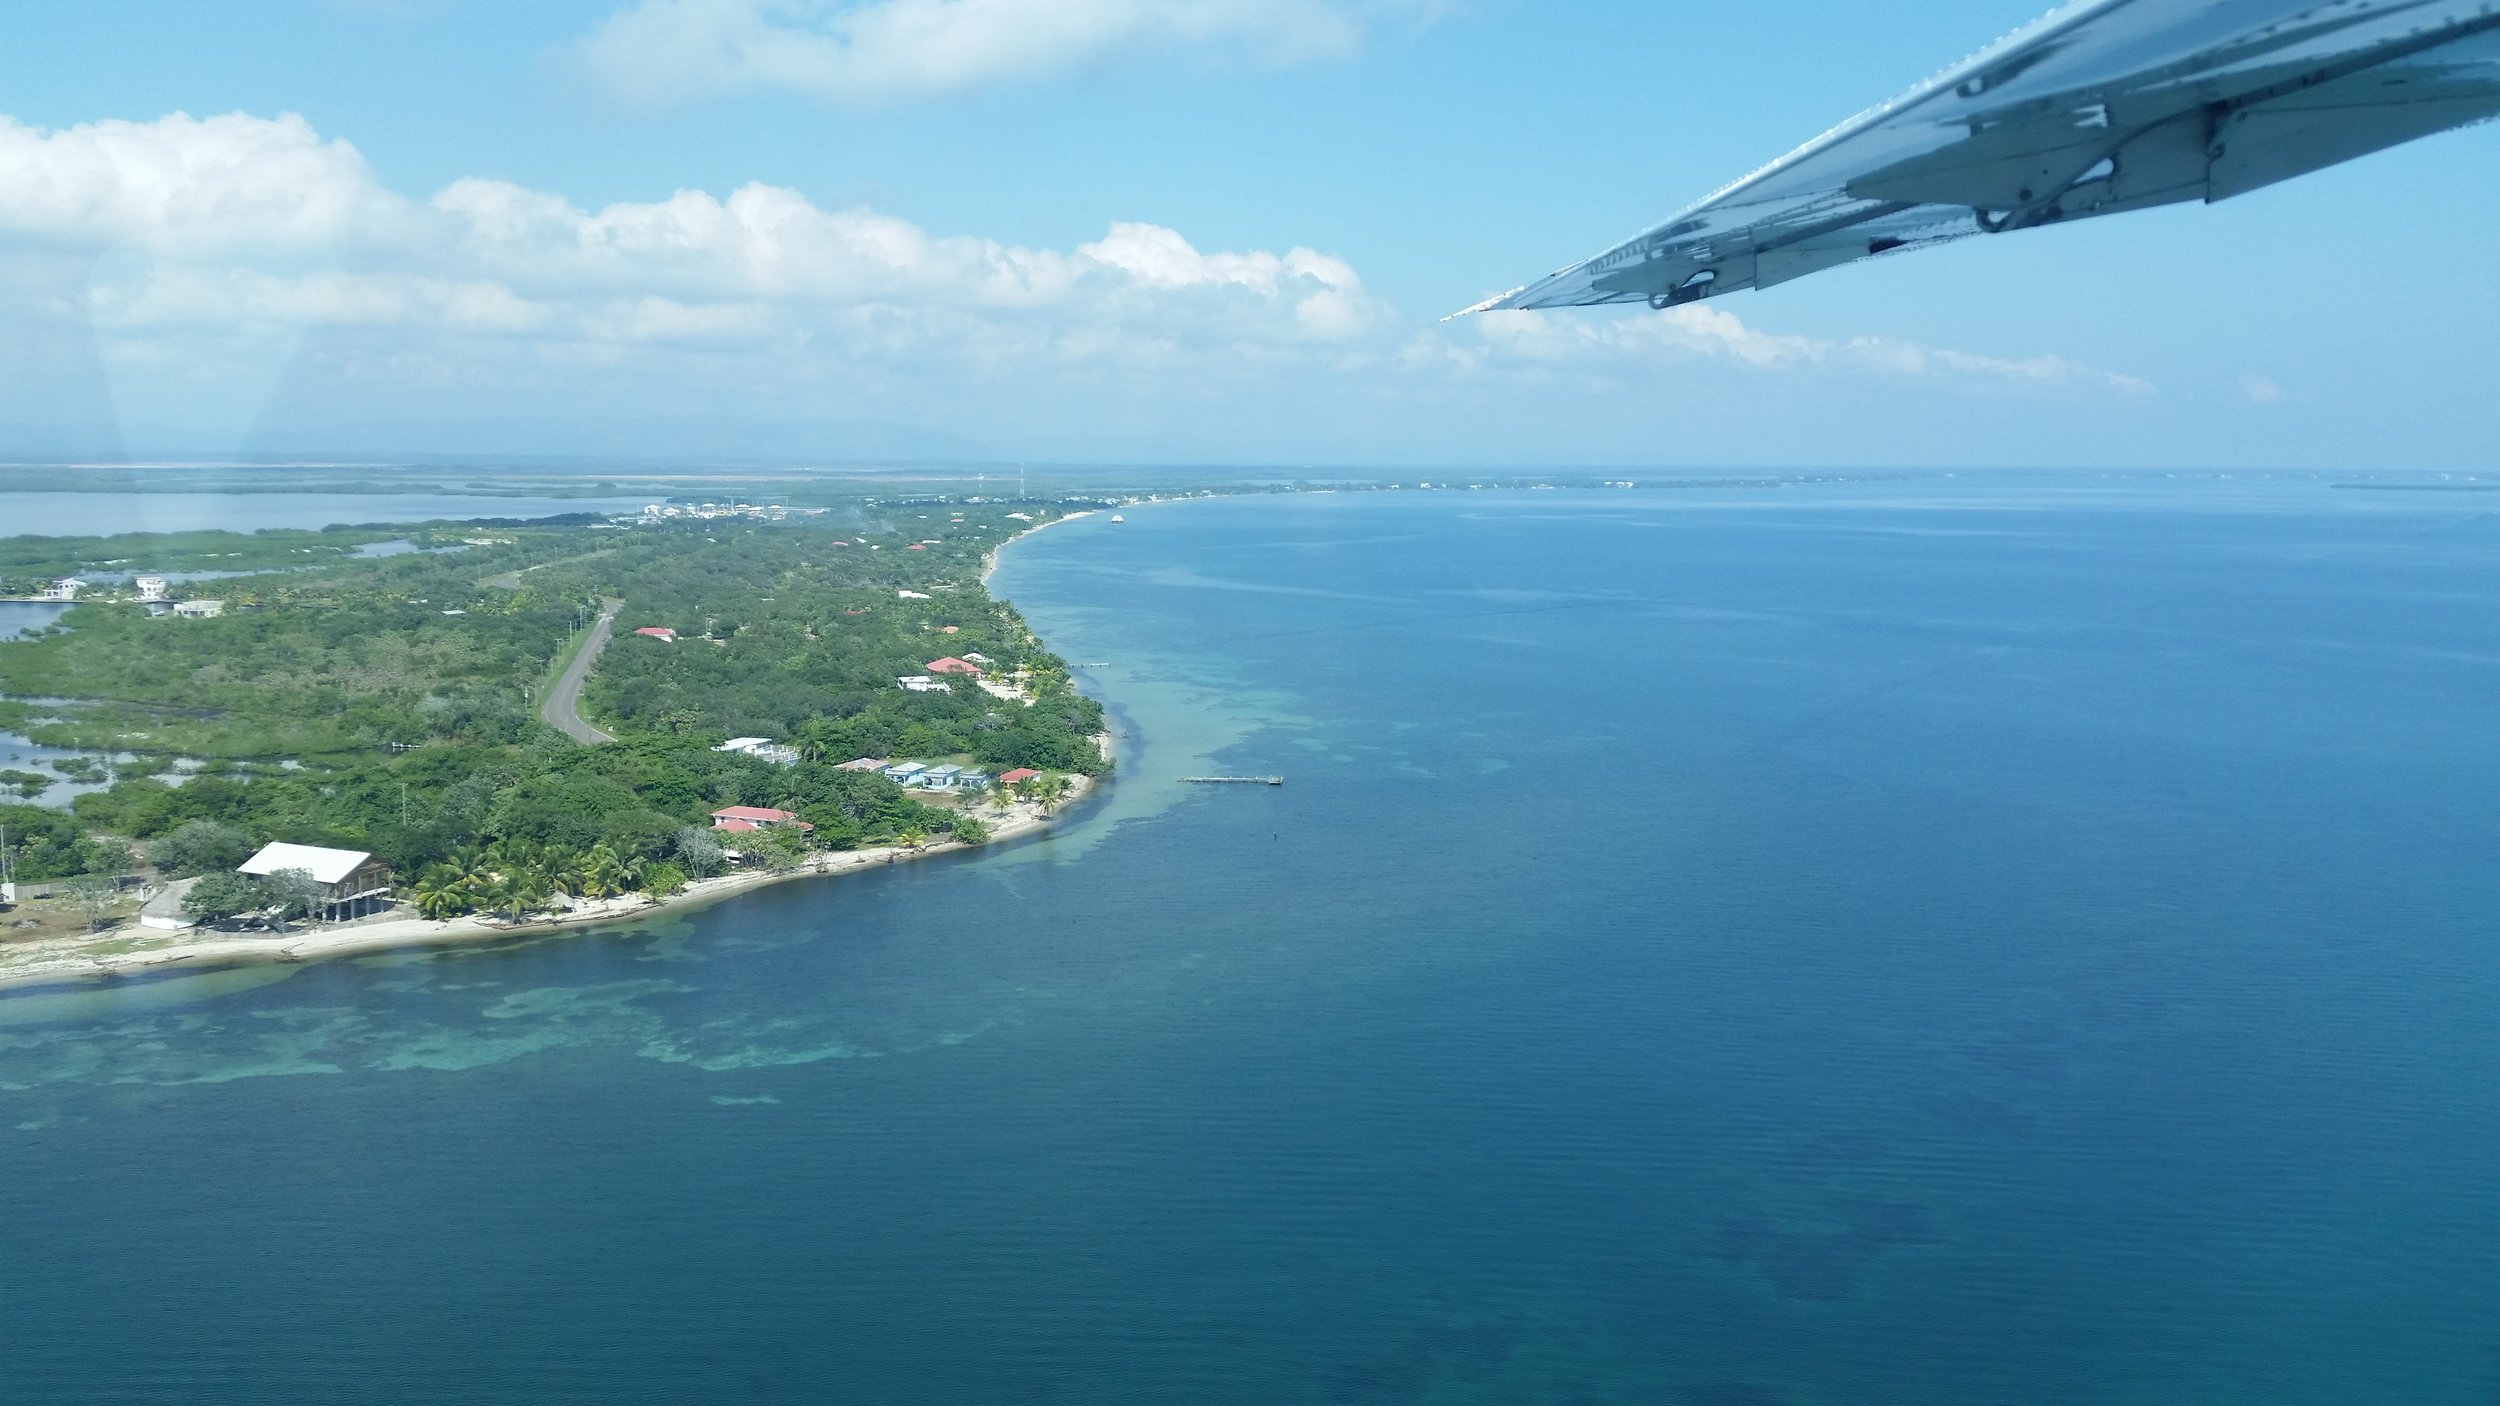 Tropic Air flight from Placencia to Ambergris Caye.